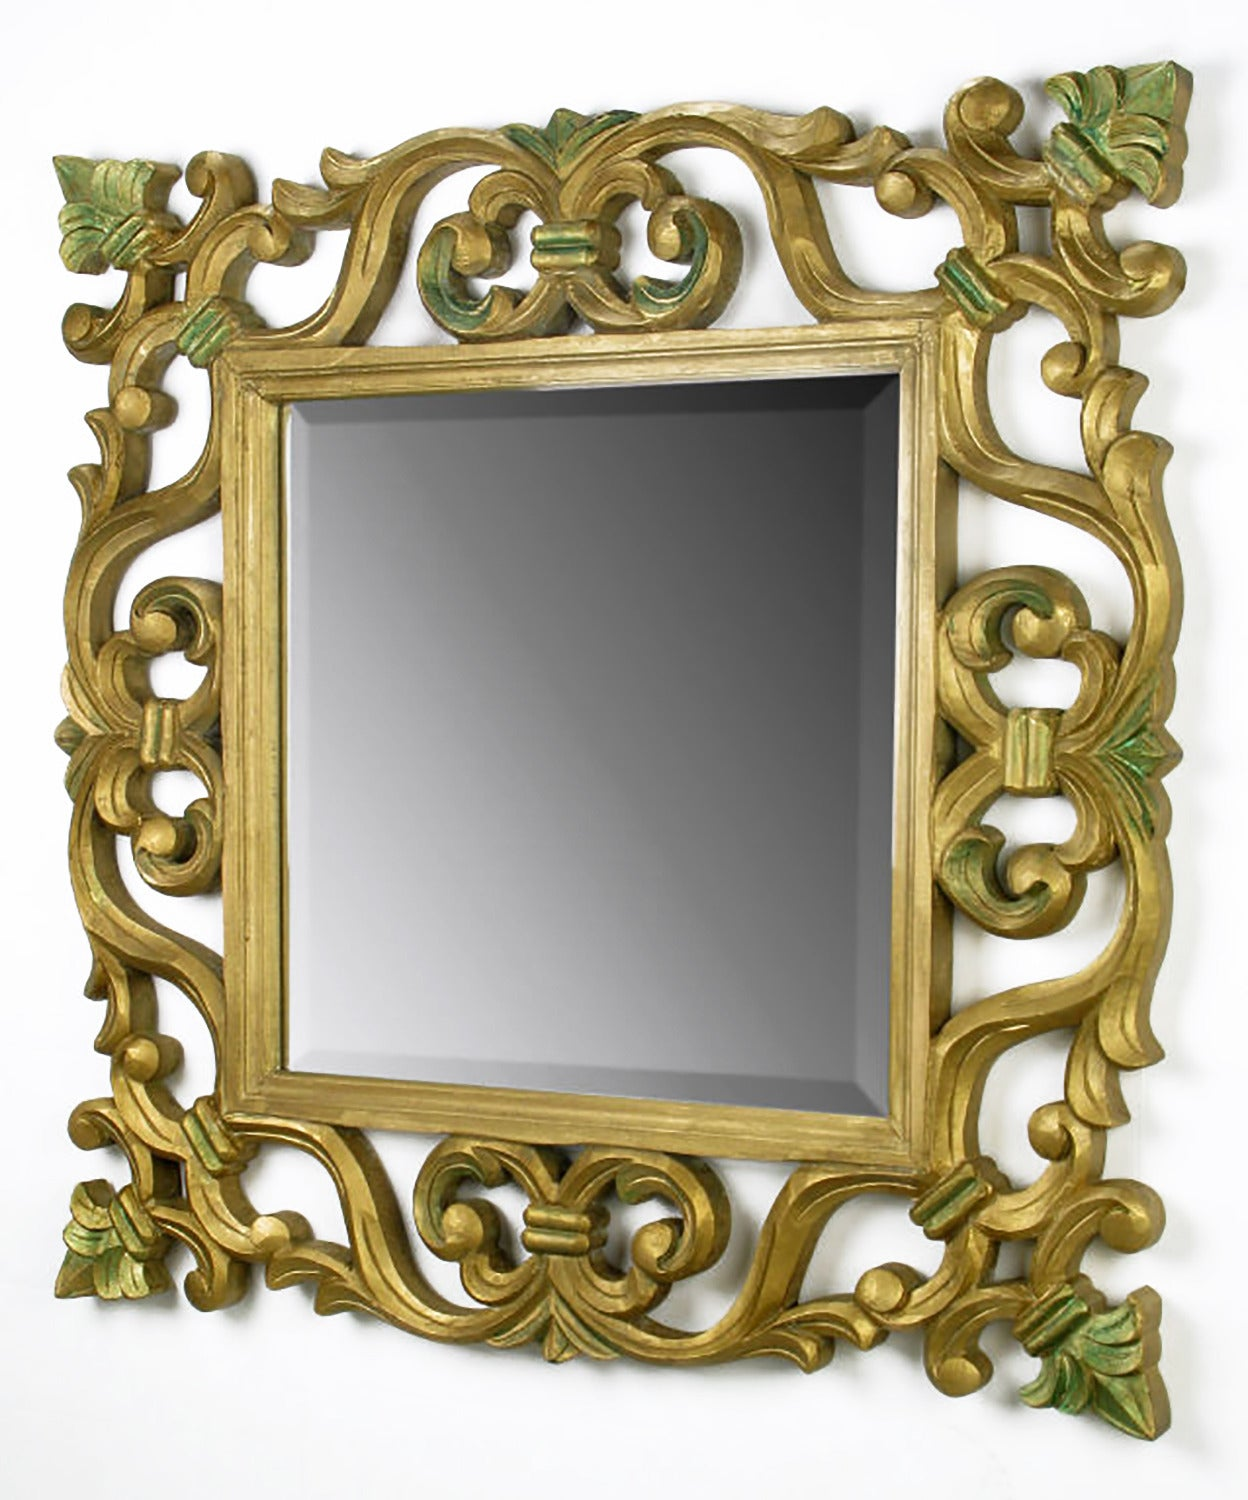 Excellent hand carved and giltwood framed beveled edge mirror with shades of verde accents. Versatile mirror with many applications.